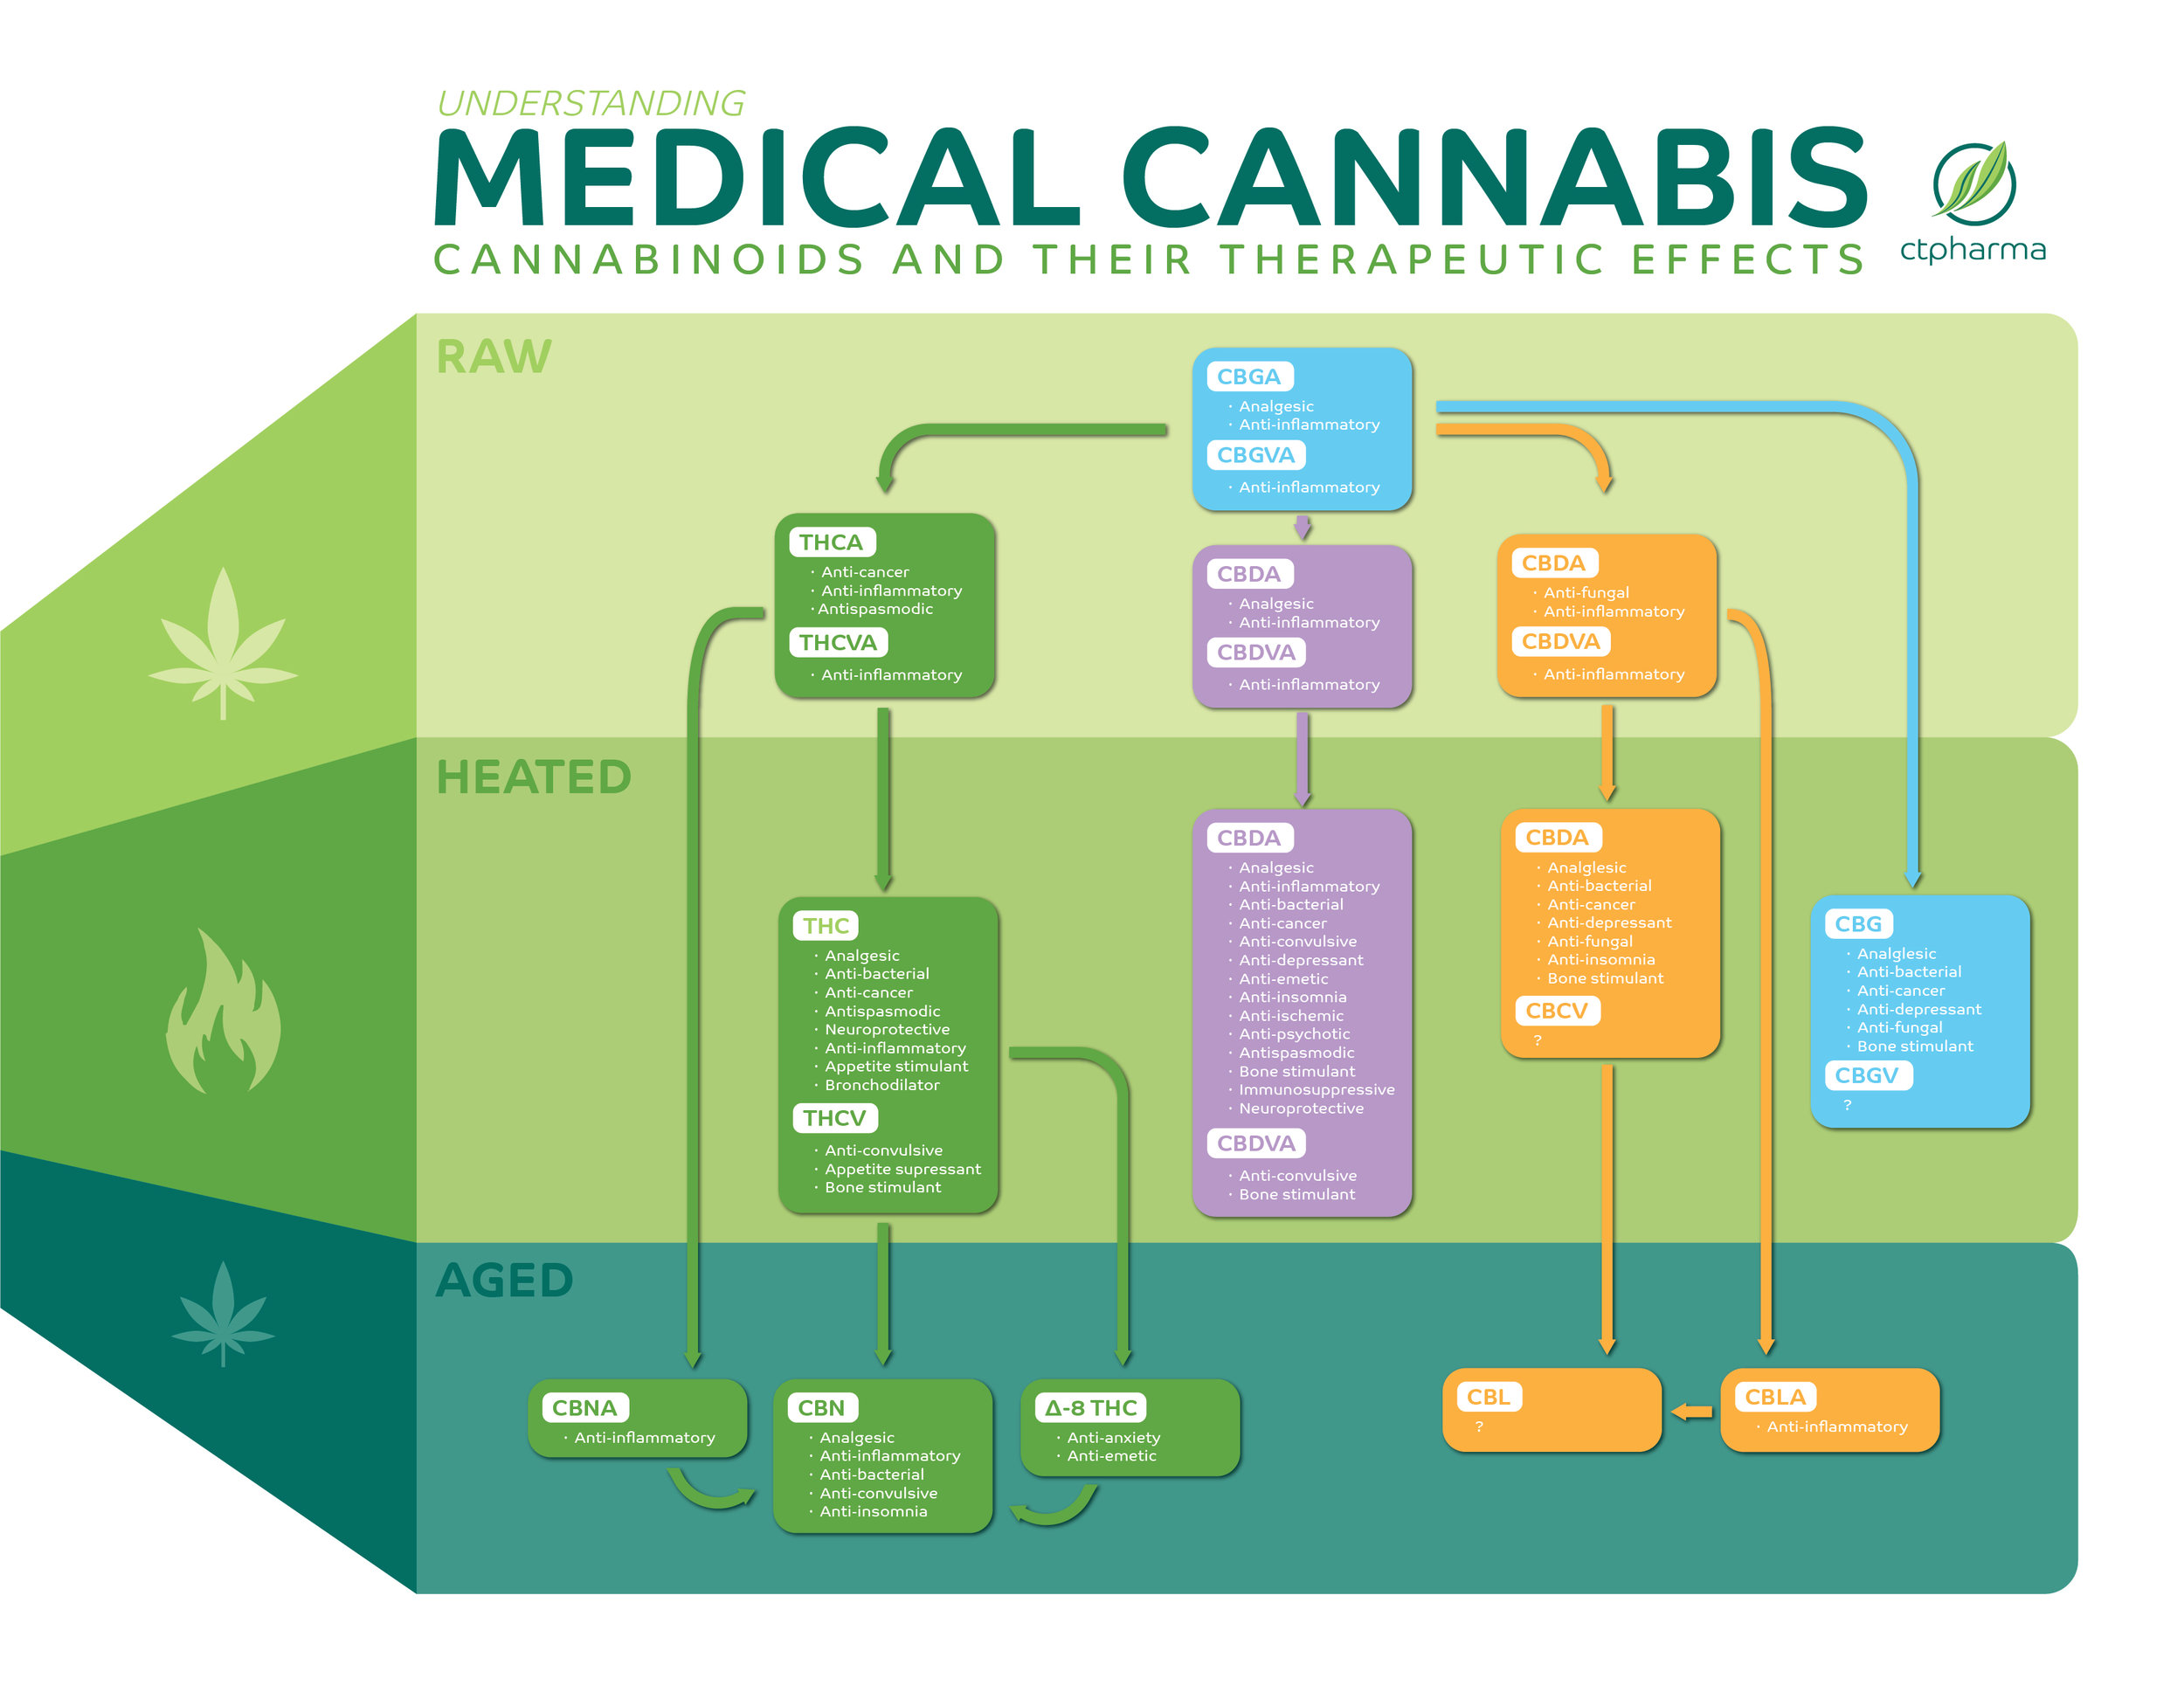 Understanding_Medical_Cannabis-01.jpg